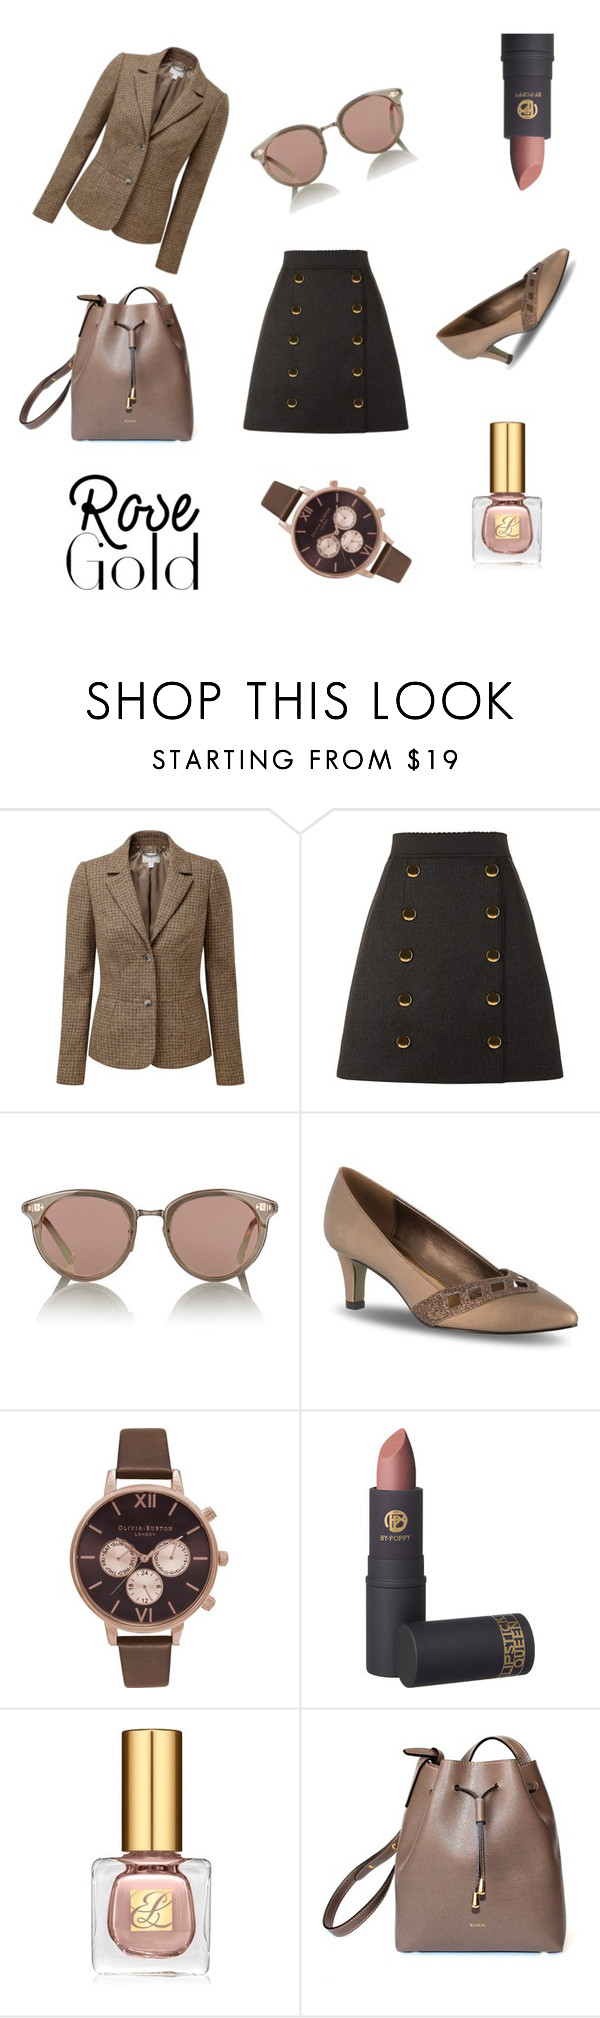 """""""Final Fanfare: Rose Gold in the Office"""" by tankytank ❤ liked on Polyvore featuring Pure Collection, Dolce&Gabbana, Oliver Peoples, Easy Street, Olivia Burton, Lipstick Queen, Estée Lauder and RUSKIN"""